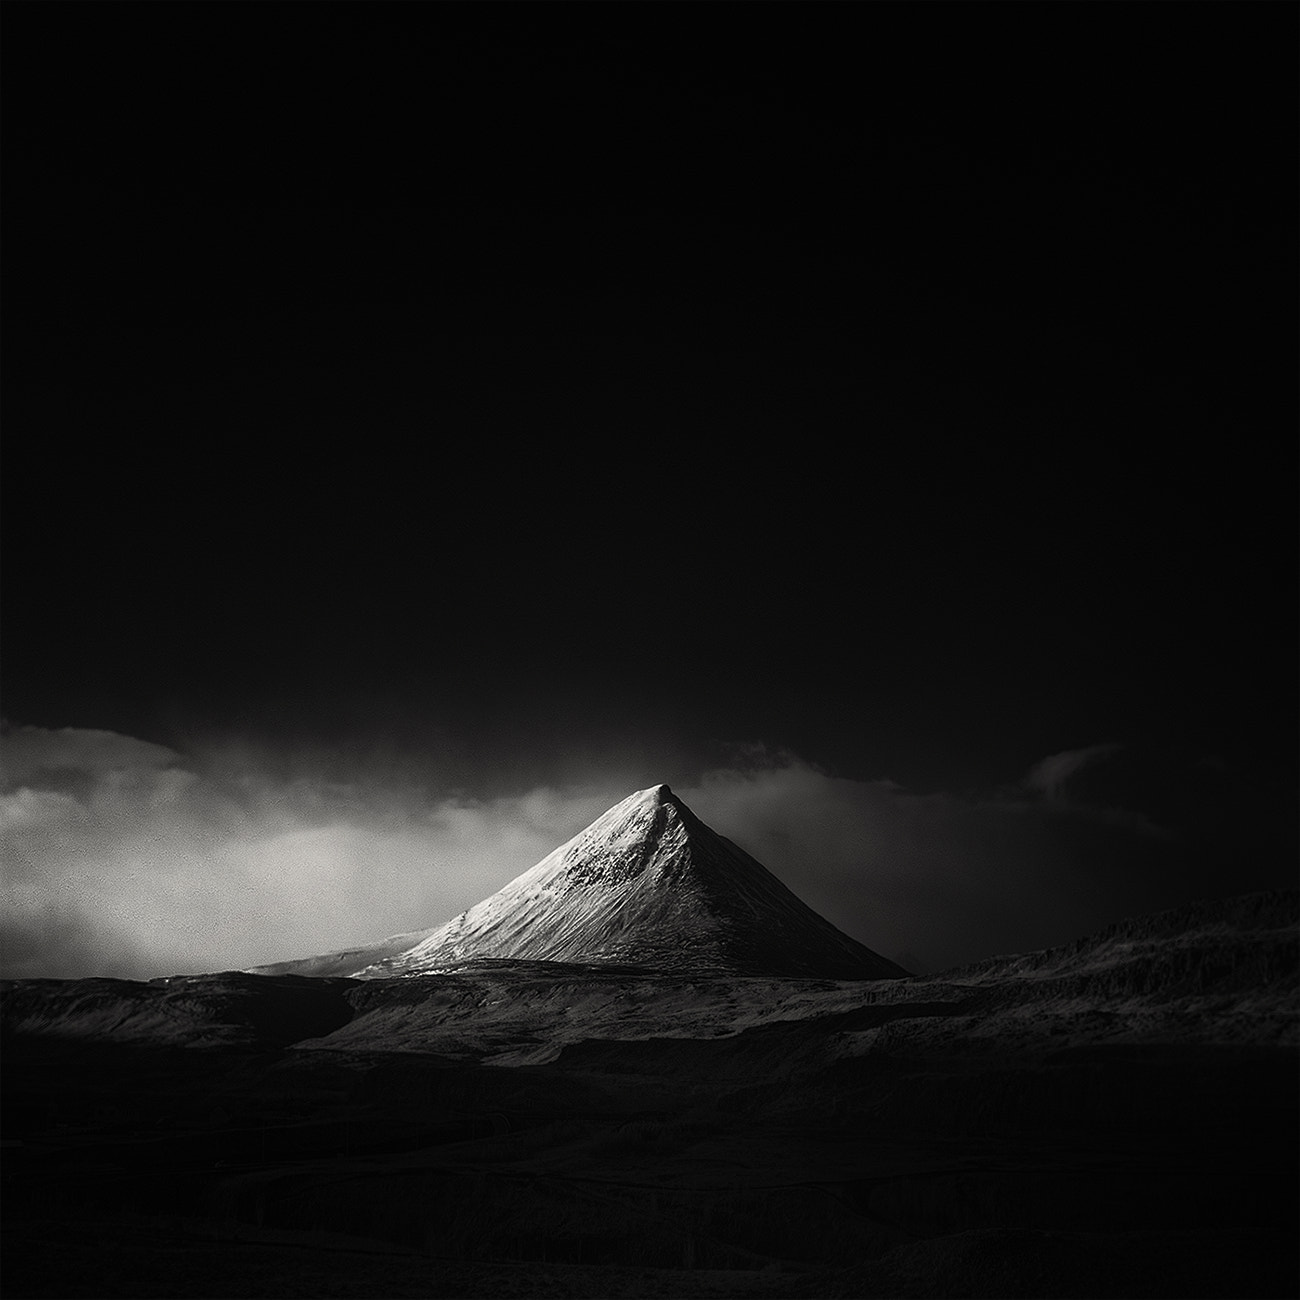 Photograph ⁜ Baula mountain by Andy Lee on 500px